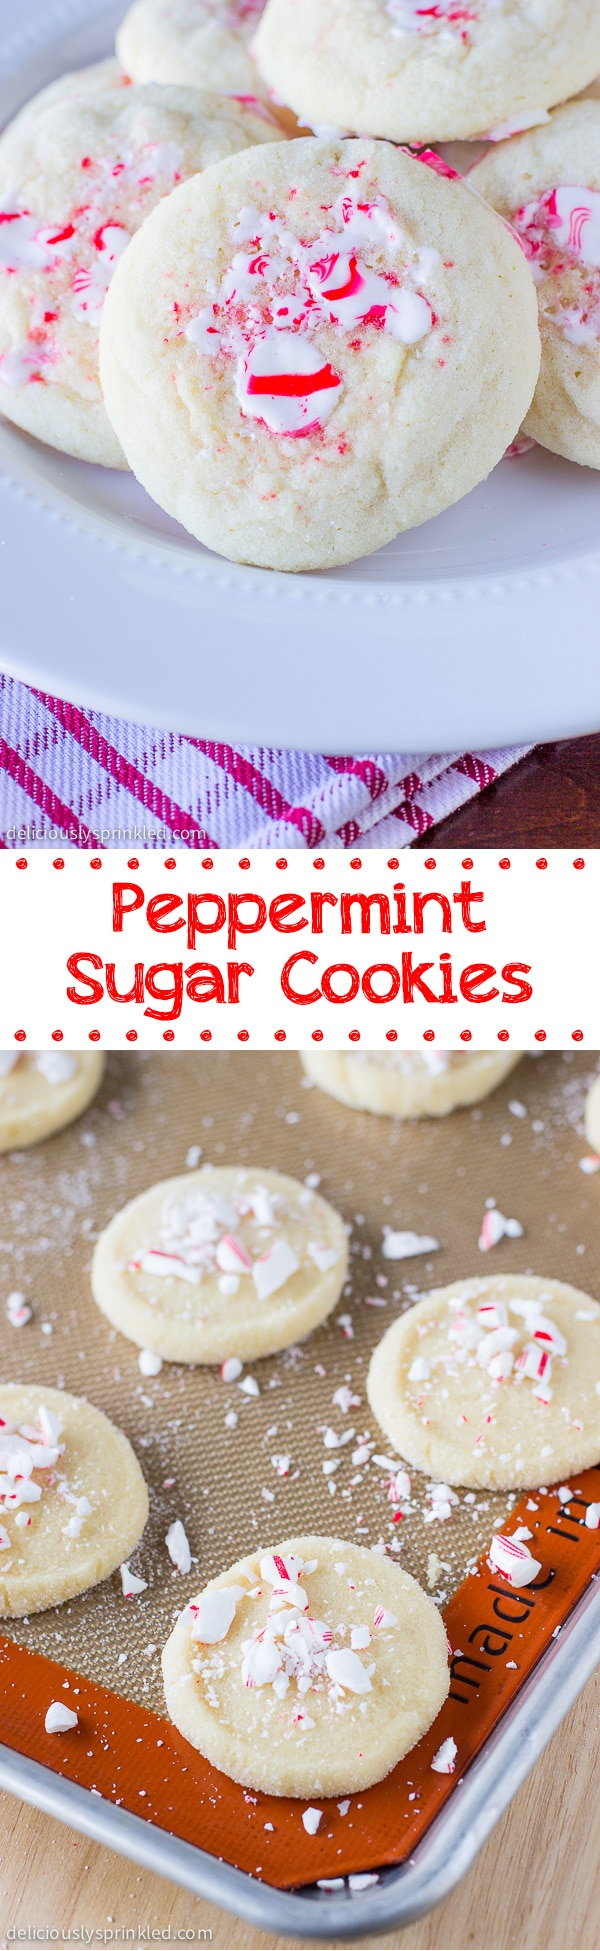 Peppermint Sugar Cookies Deliciously Sprinkled